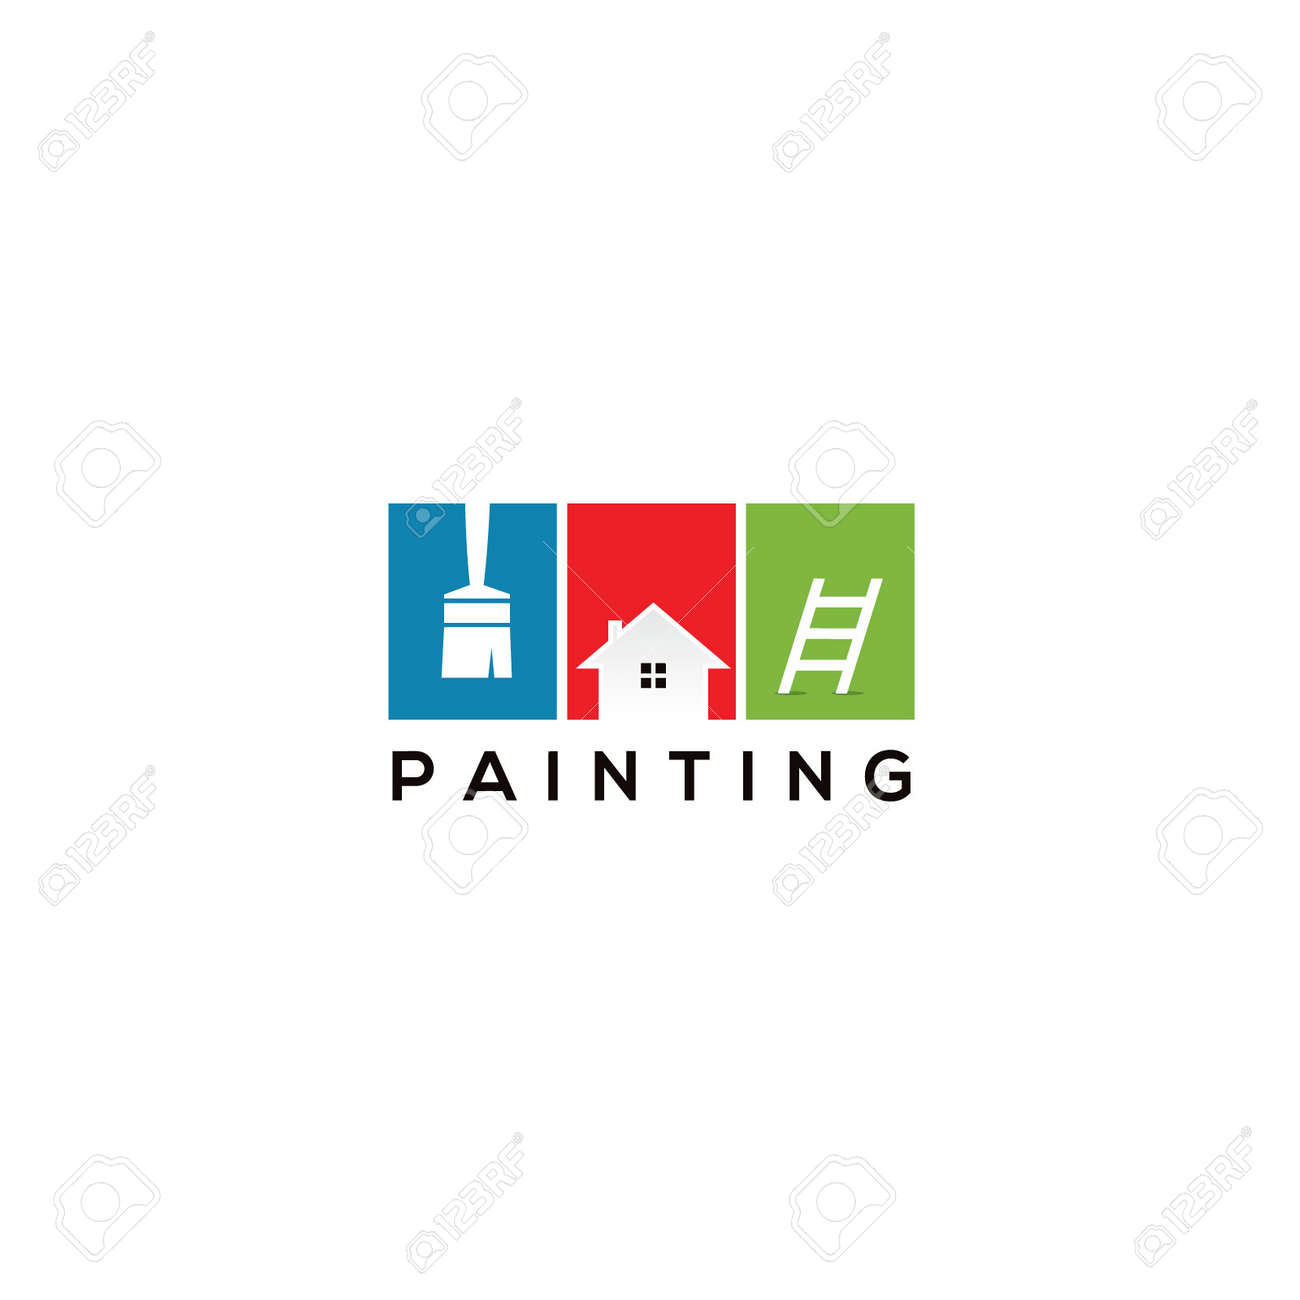 House Paint Logo Design Home Painting Service Vector Icon Construction